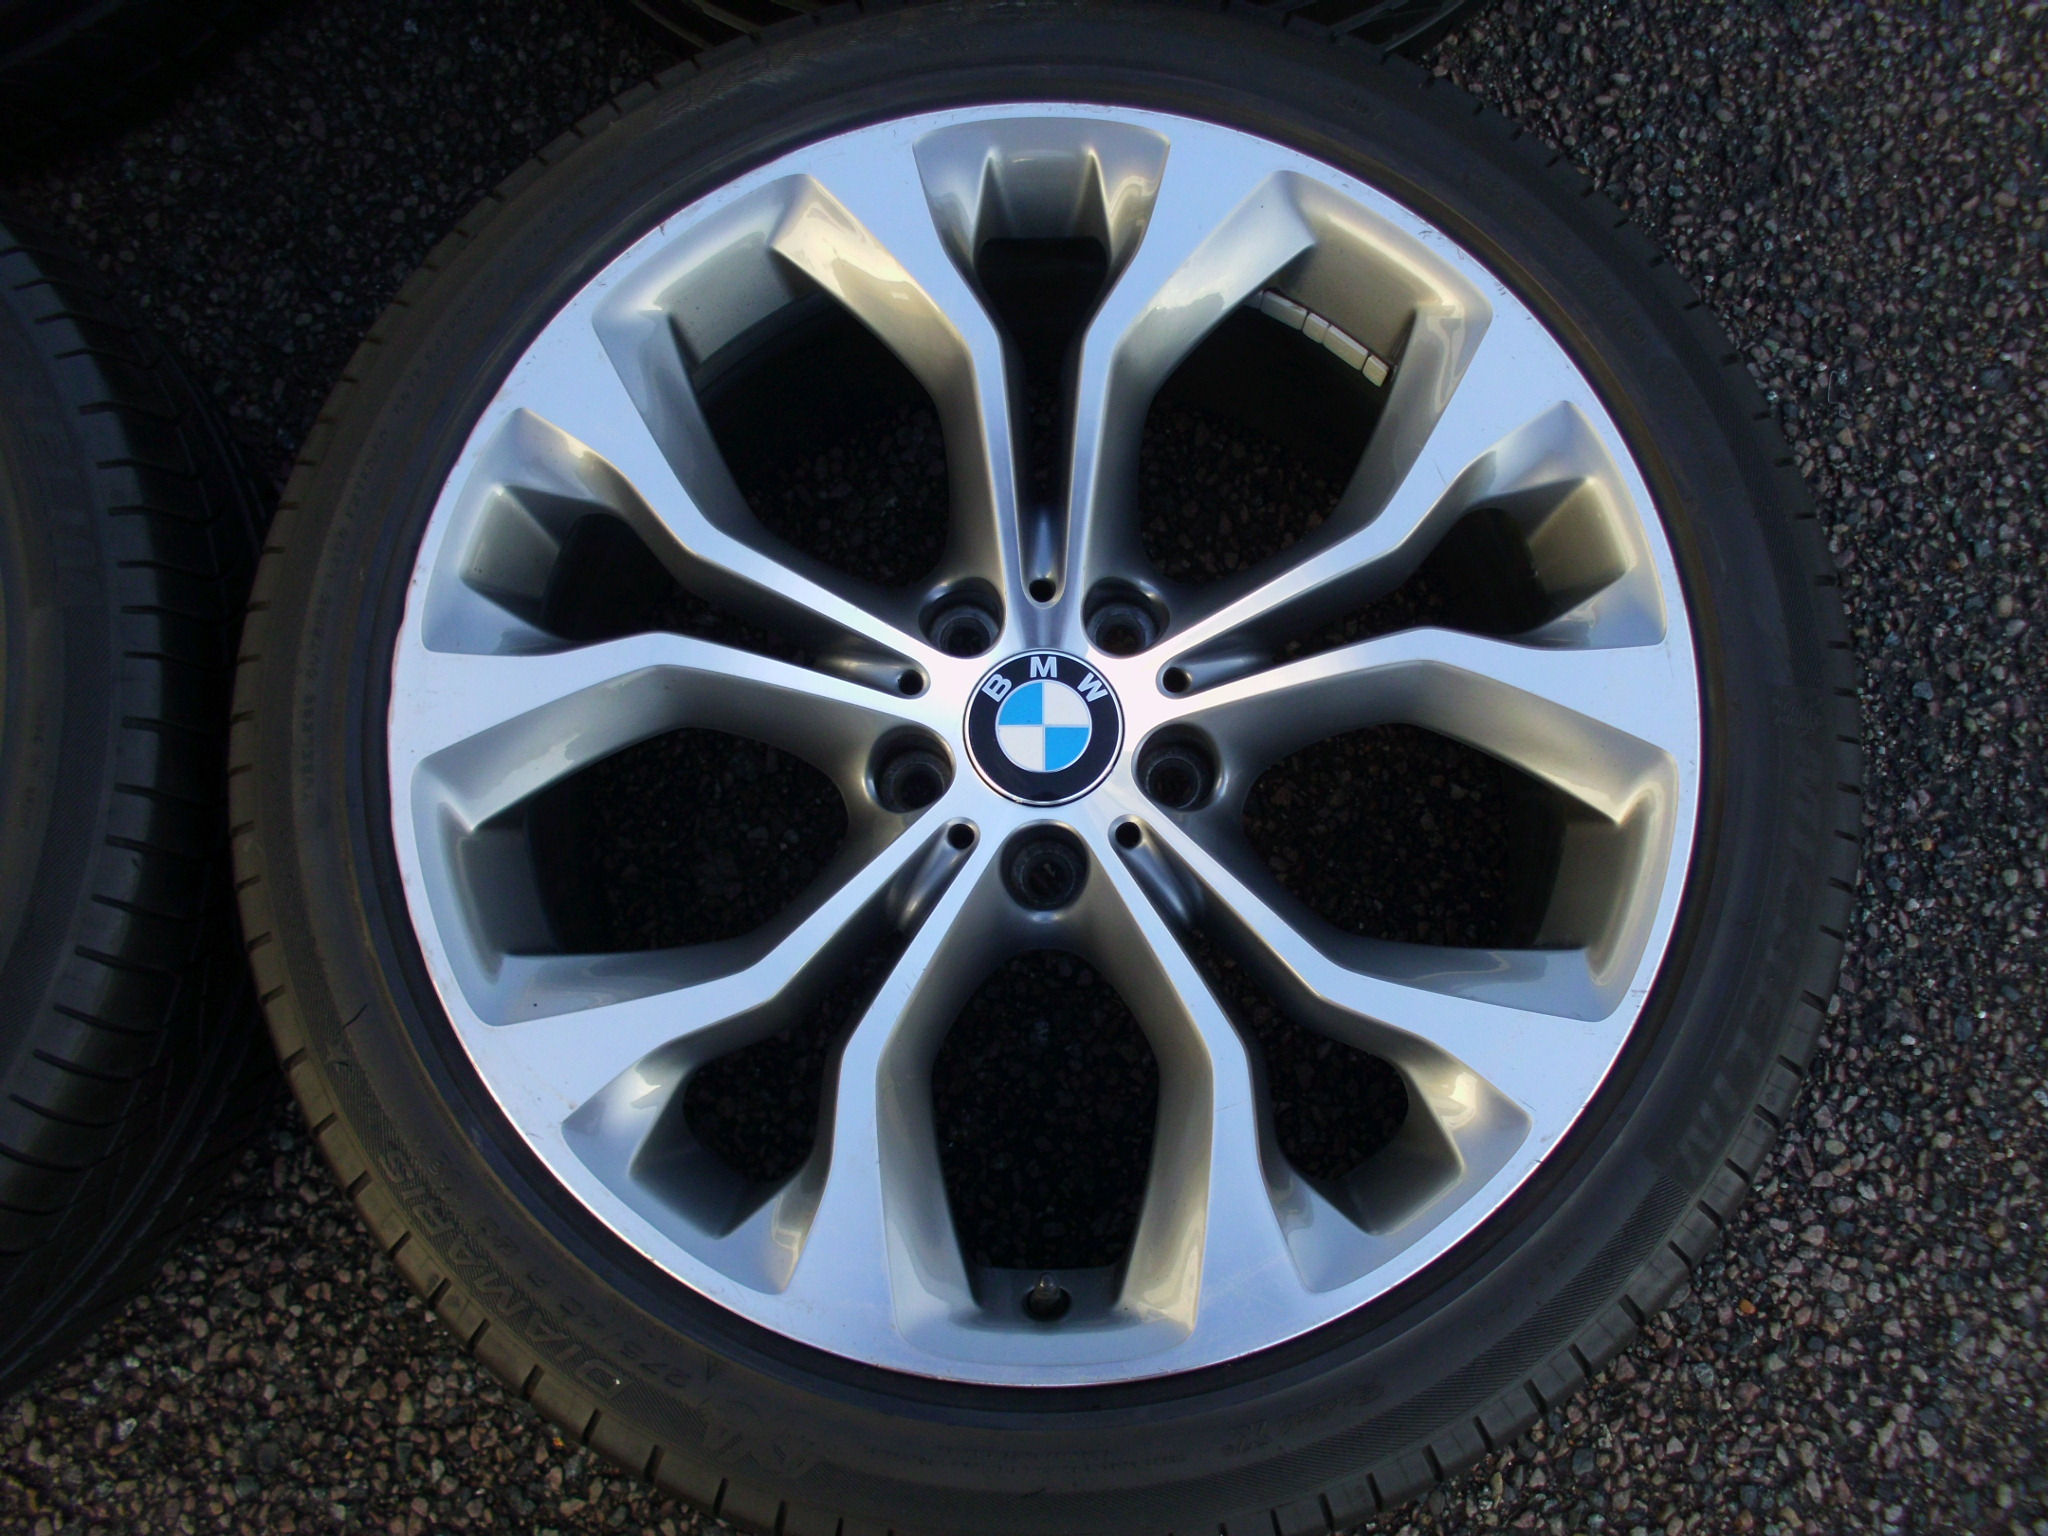 "USED 20"" GENUINE STYLE 451 F15/16 X5/X6 Y SPOKE SPORT ALLOY WHEELS,CLEAN,11"" REAR, INCLUDING GOOD NON RUNFLAT TYRES"